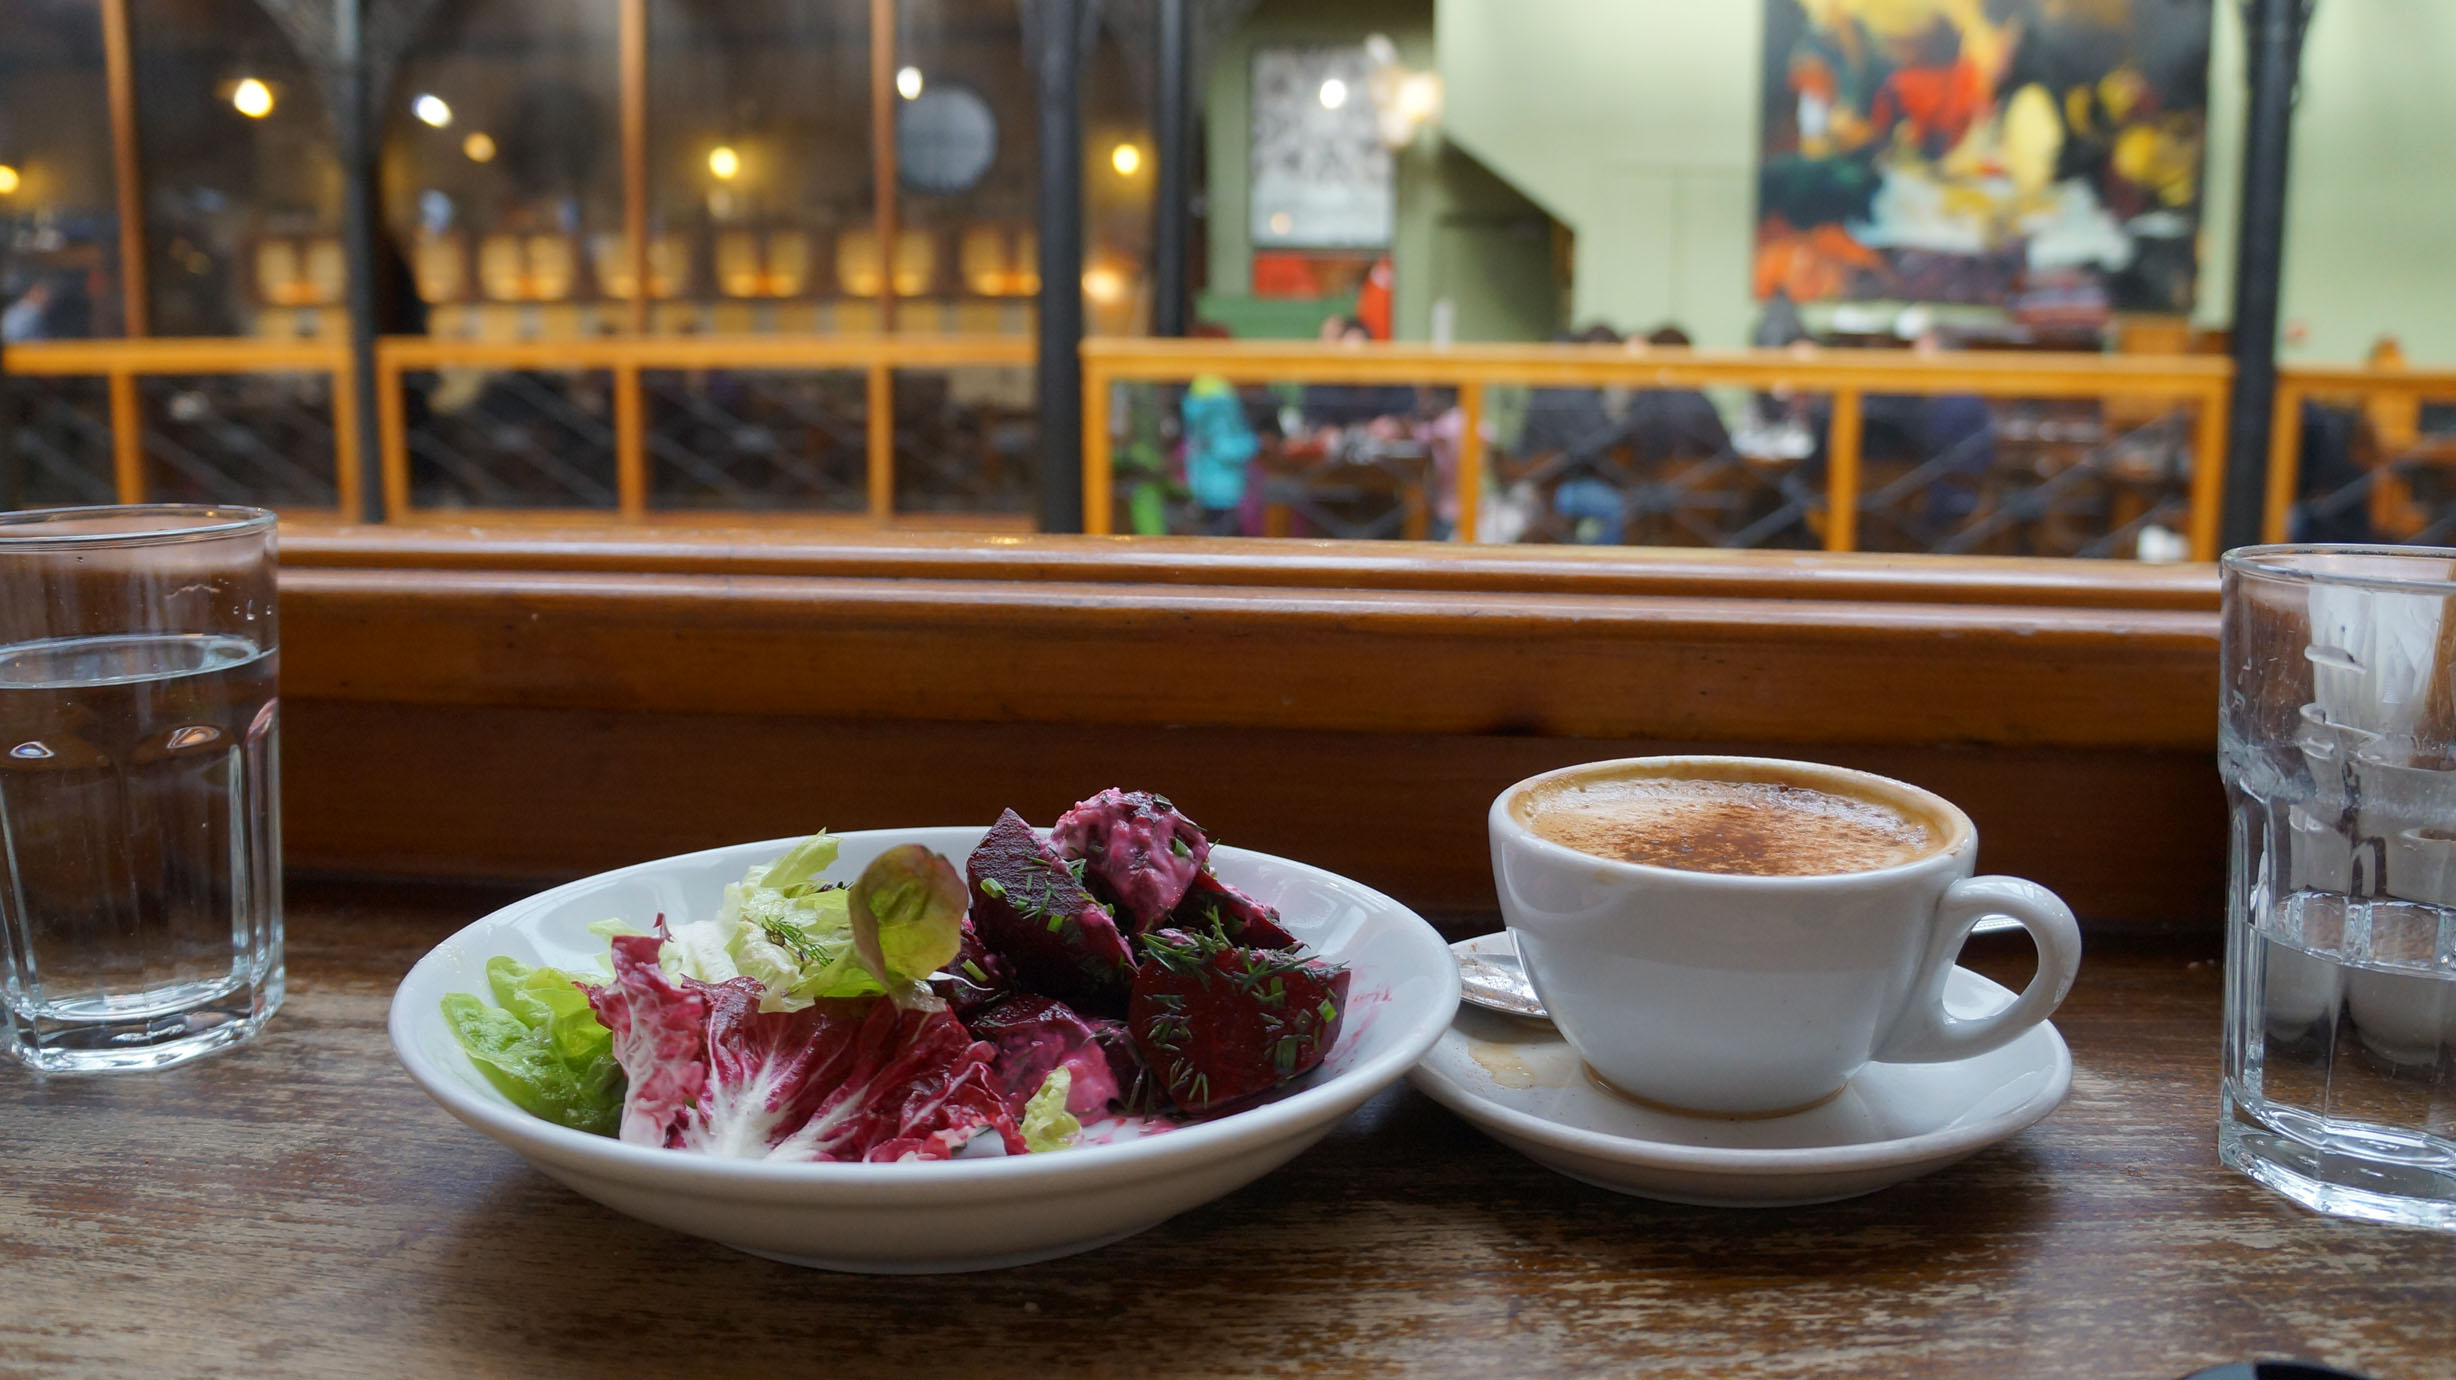 Beautiful cappuccino and beat salad.. waiting for my sandwich. At Farmgate Cafe!